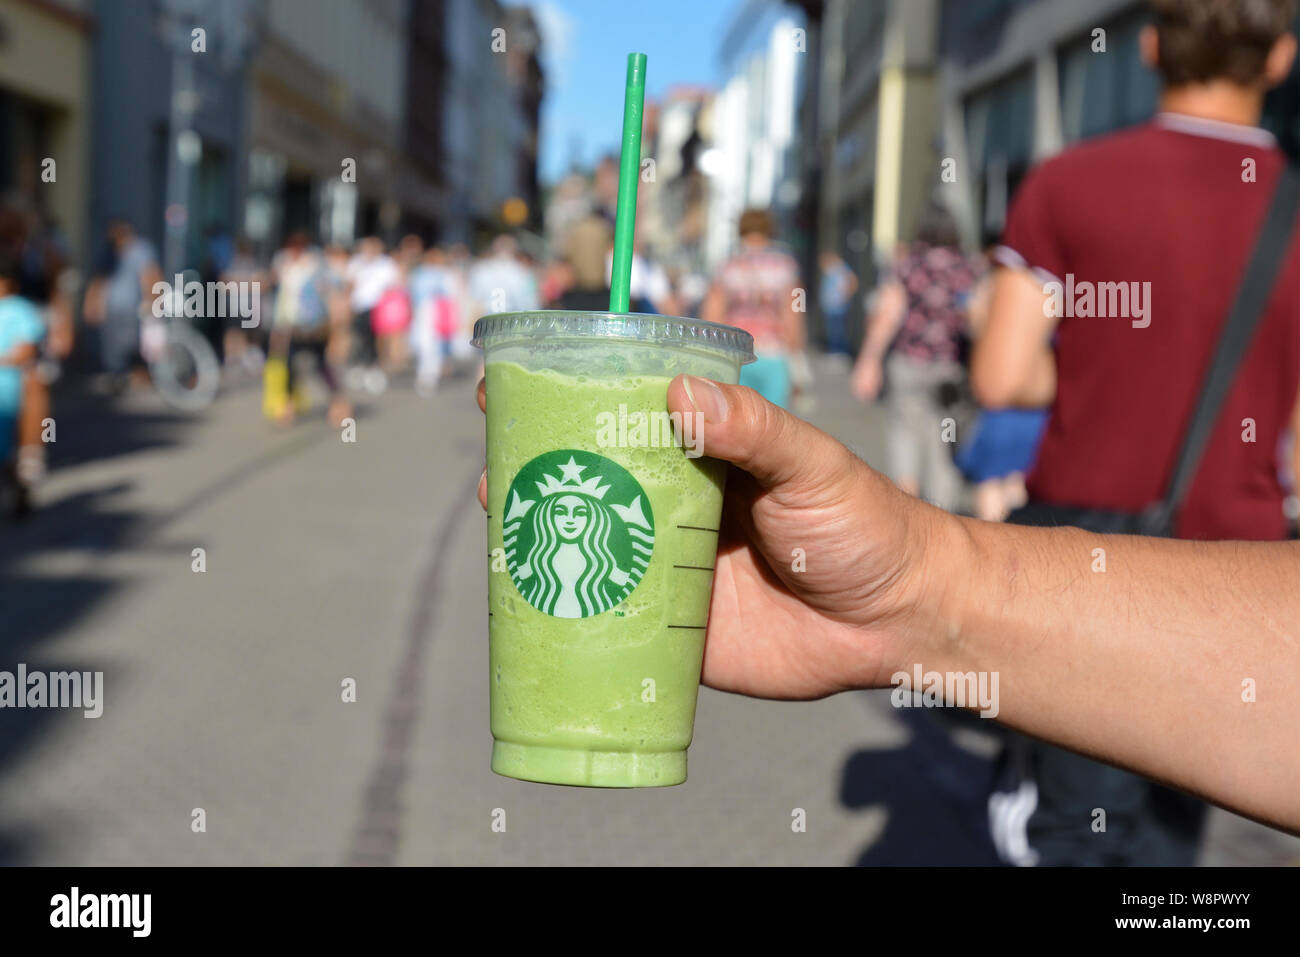 Holding Coffee Photosamp; Holding Holding Cup Starbucks Starbucks Starbucks Cup Photosamp; Coffee LpMGSqUzV